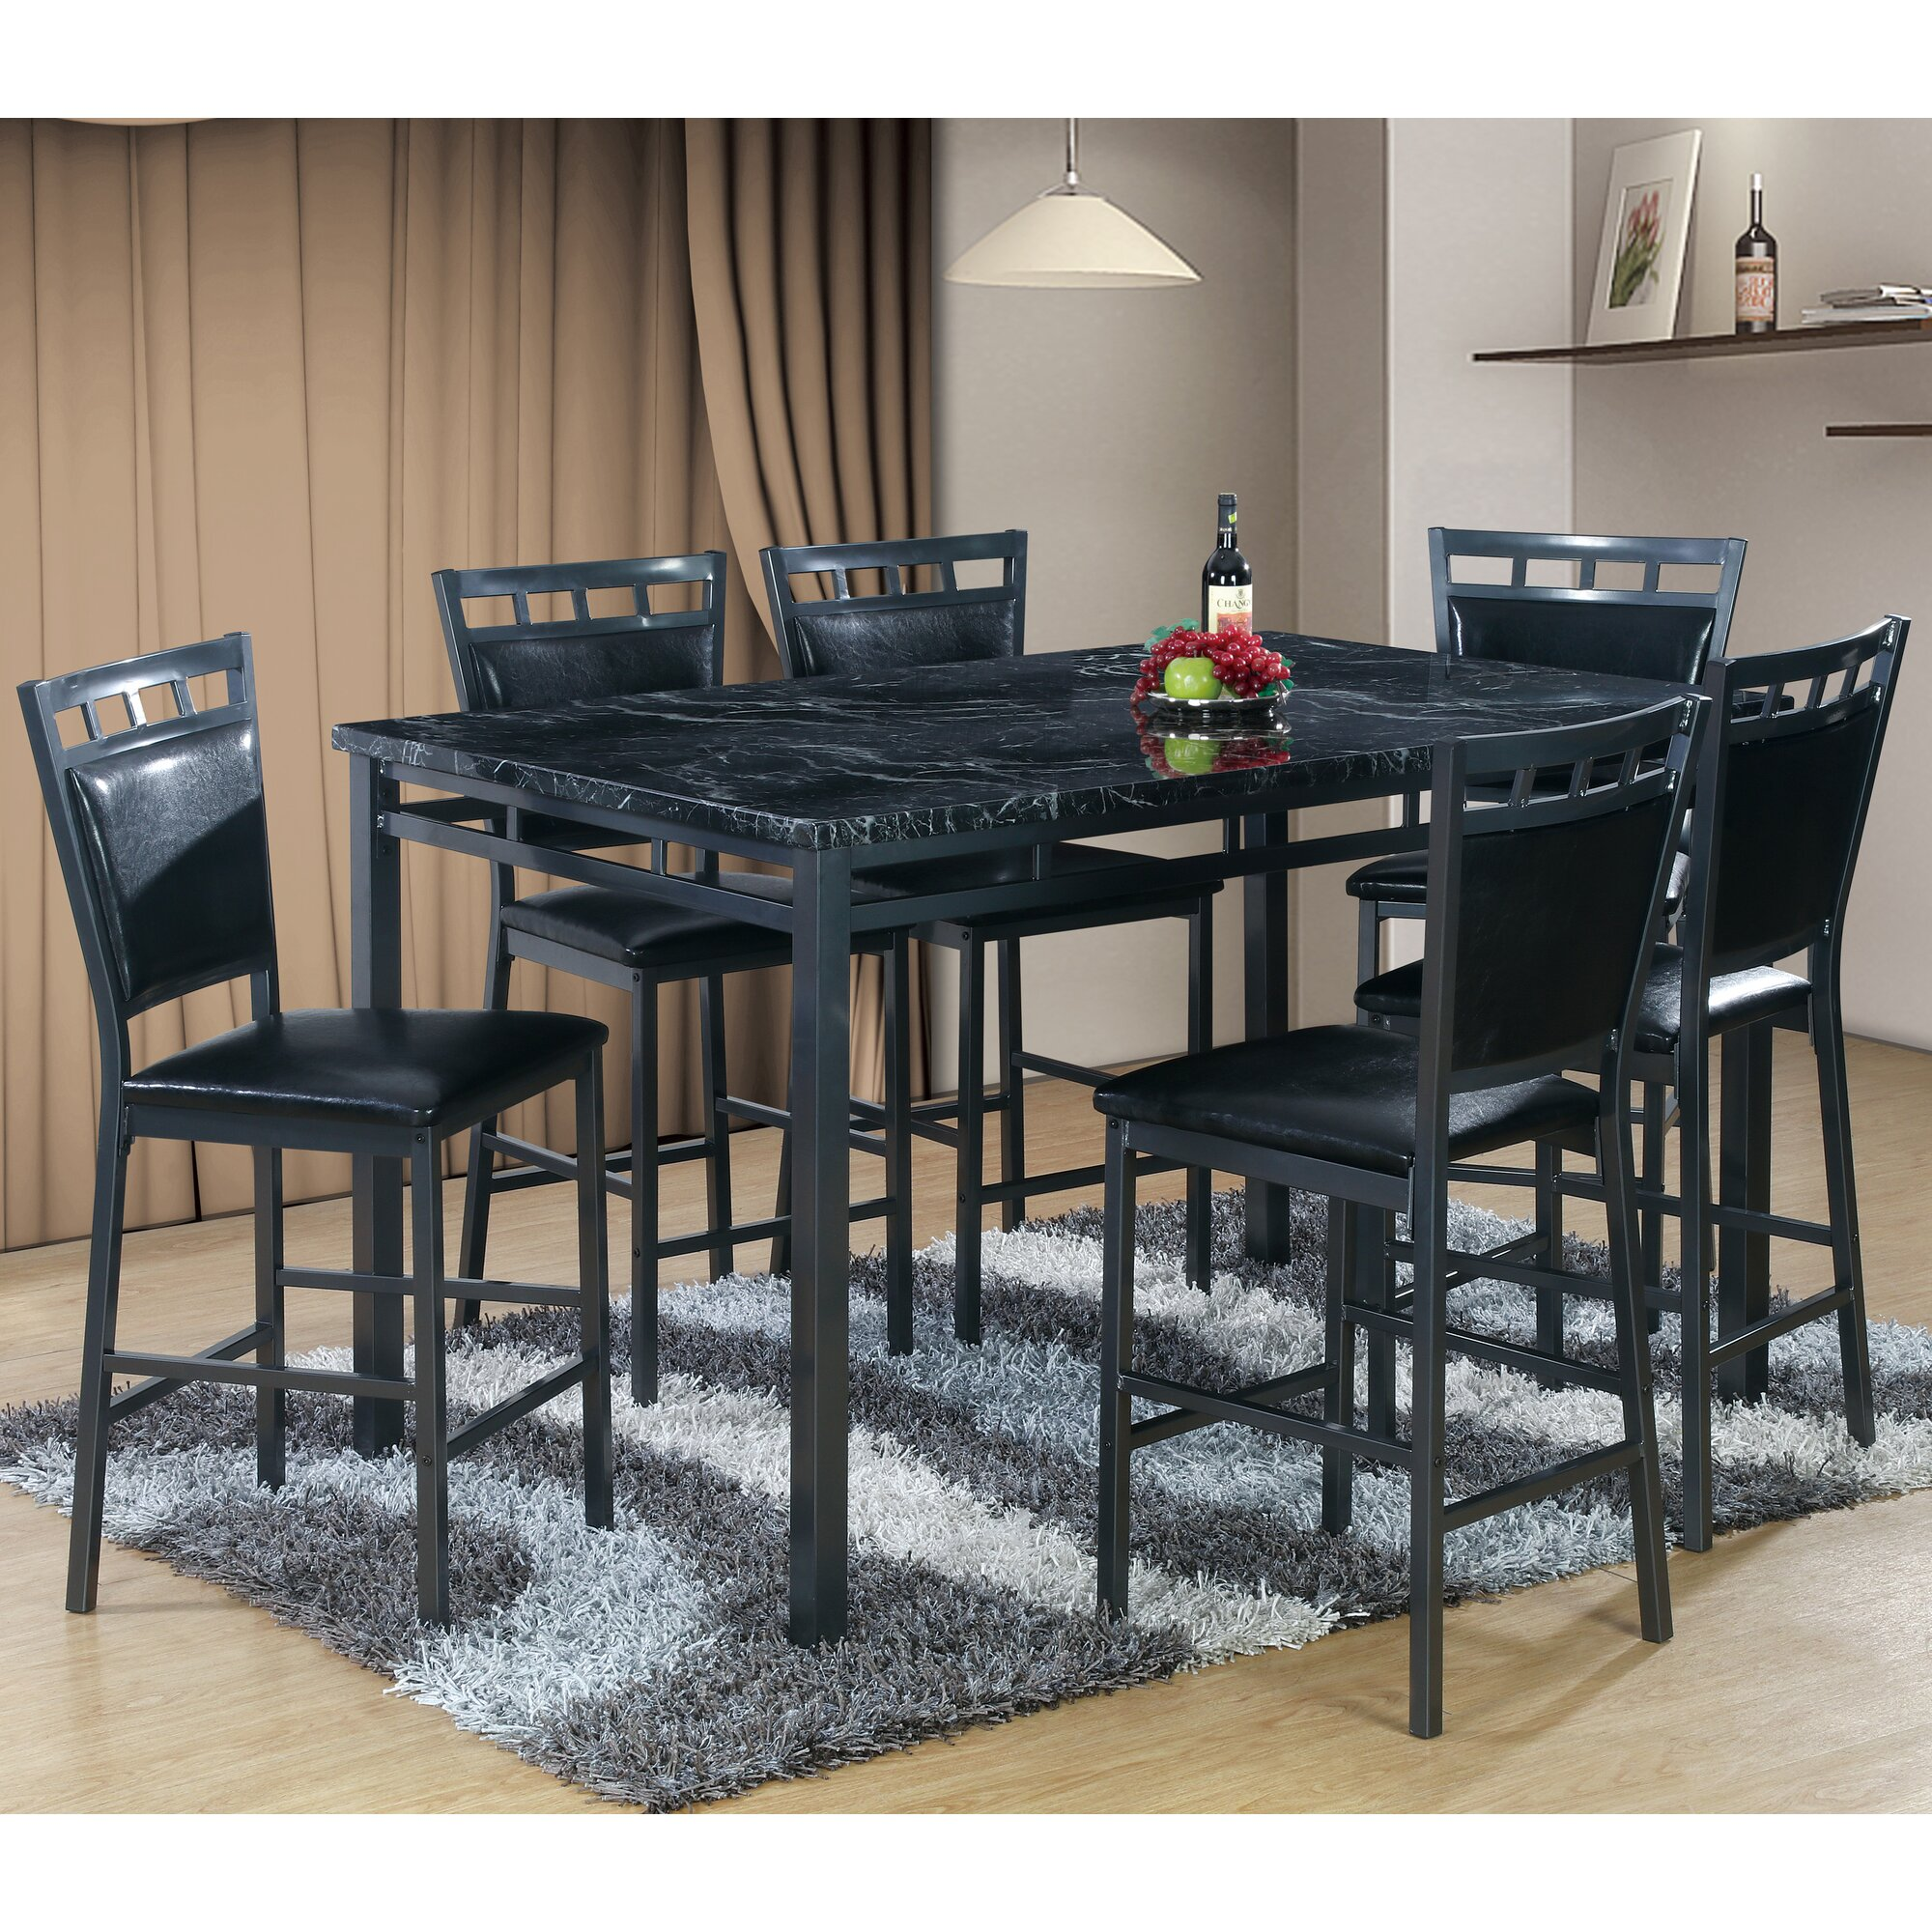 Best Quality Furniture  Piece Counter Height Dining Table Set - Best quality dining room furniture